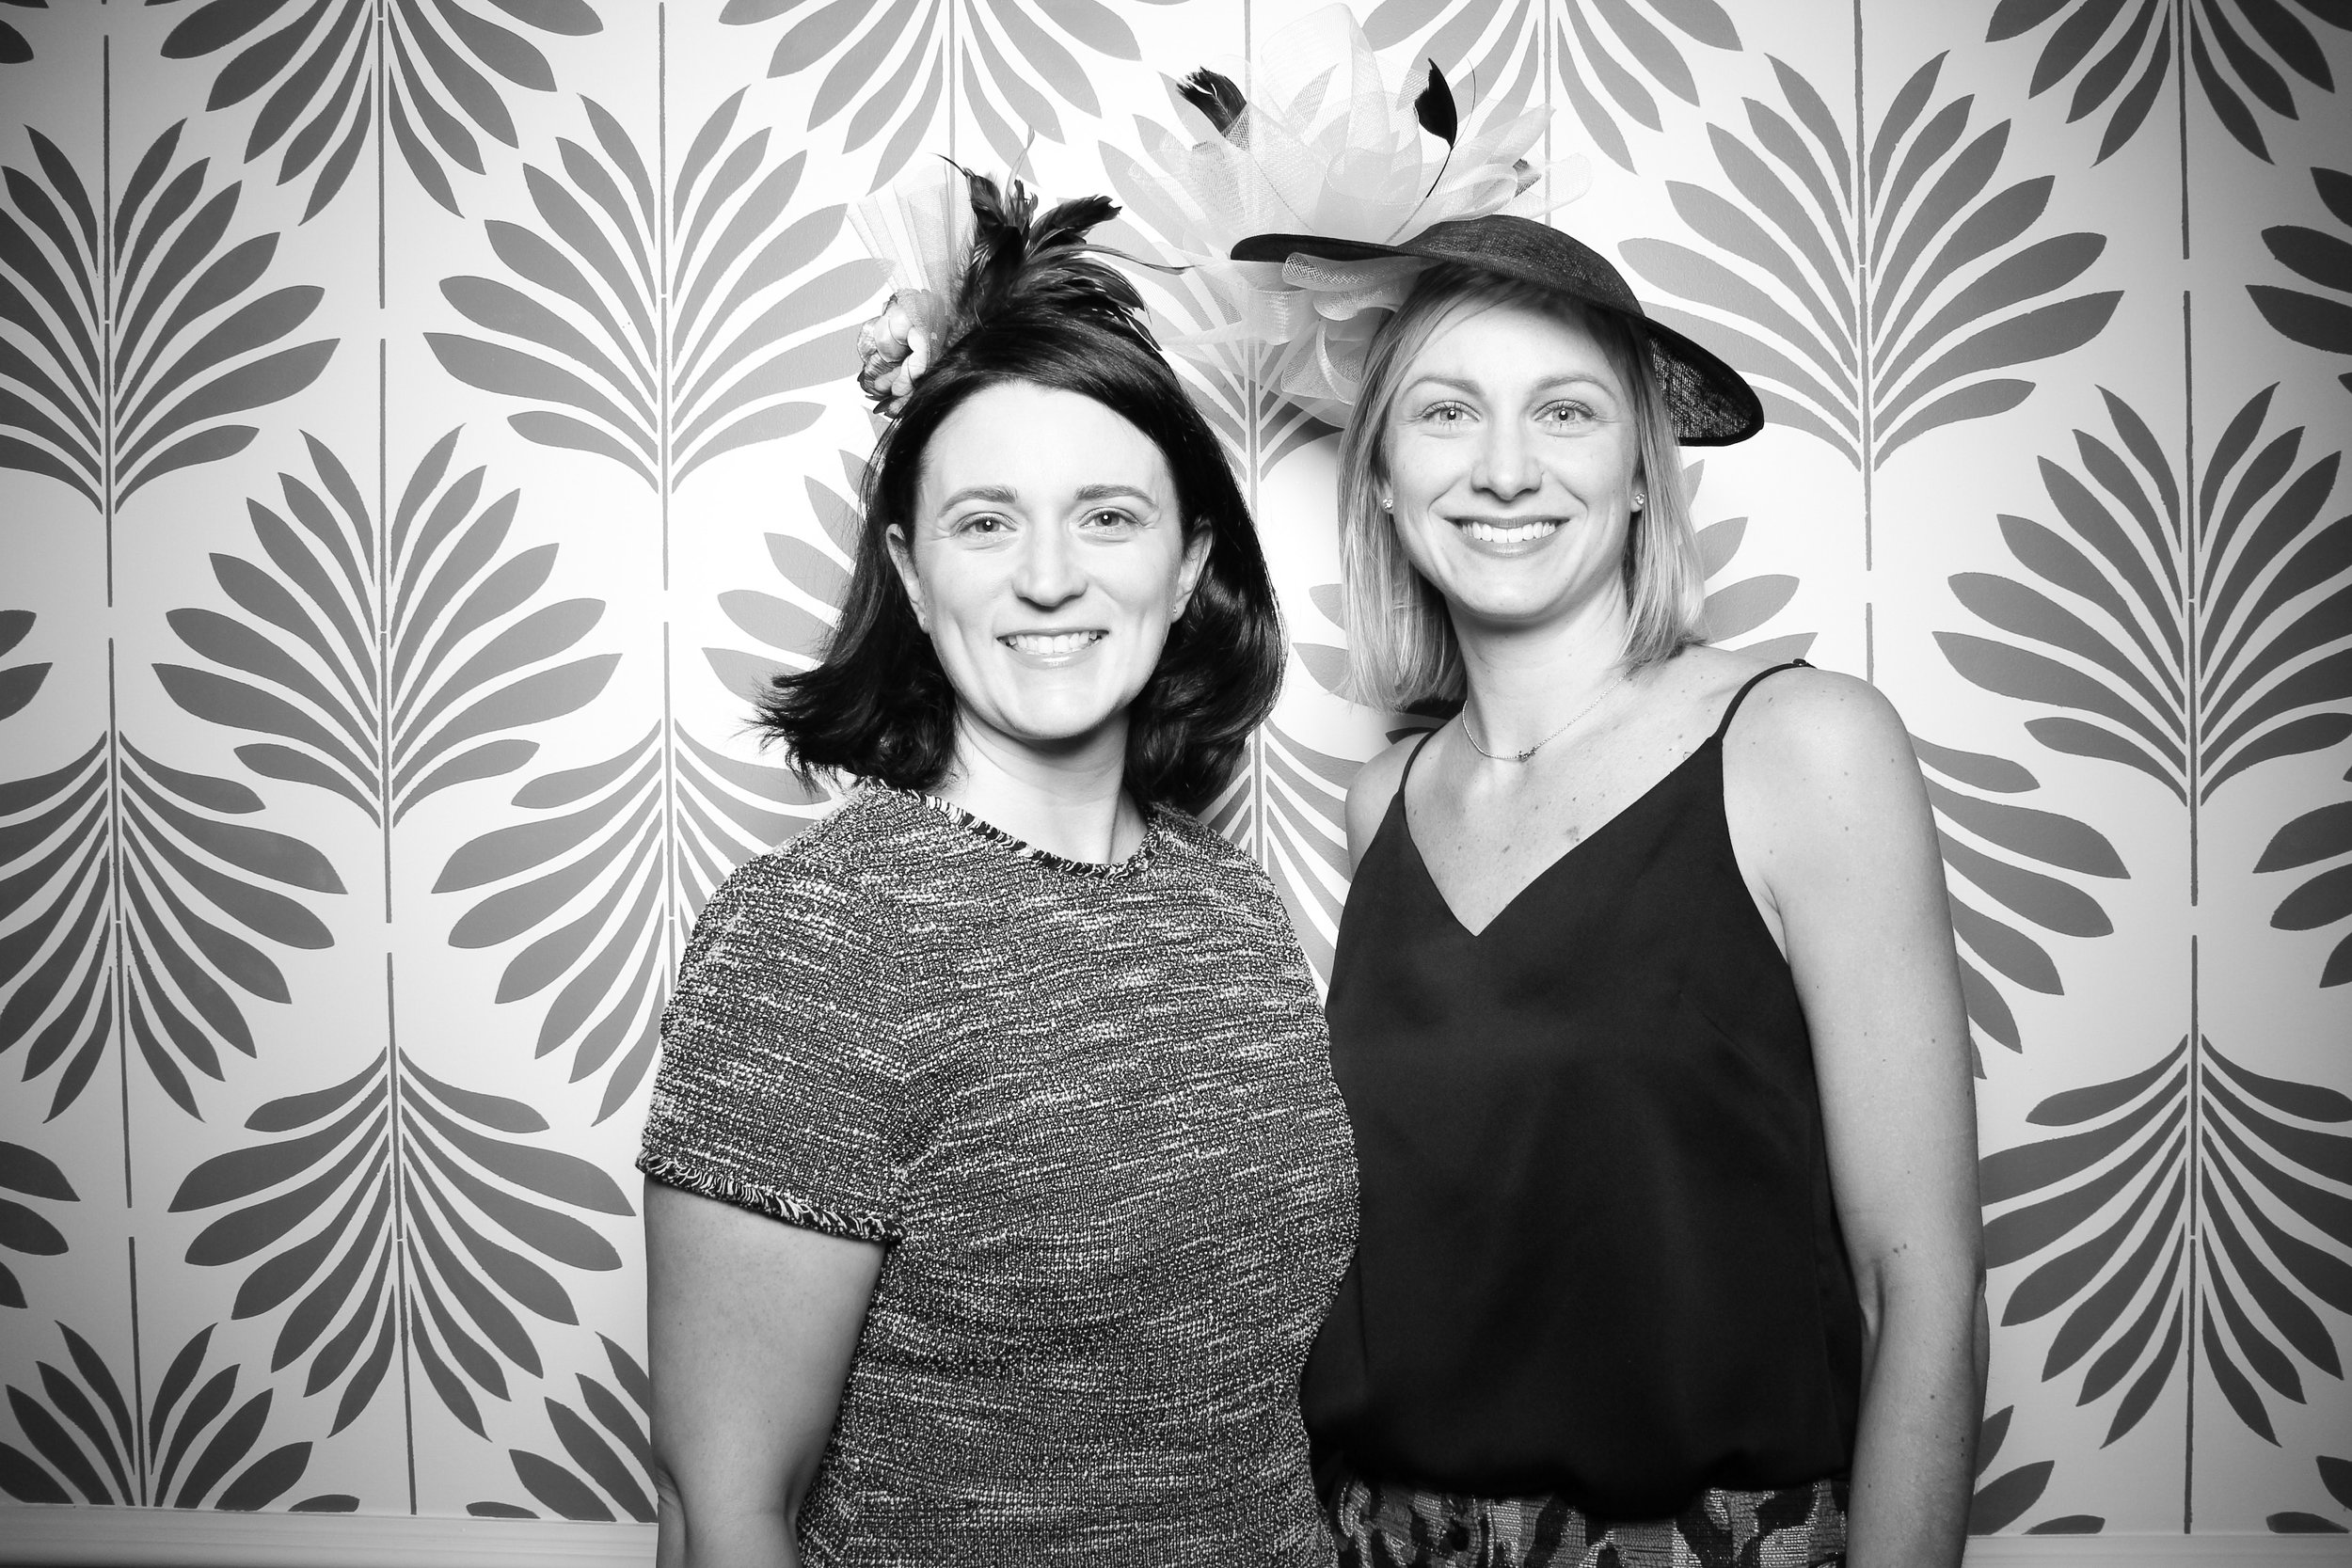 LaGrange_Country_Club_Photo_Booth_Wedding_Reception__06.jpg